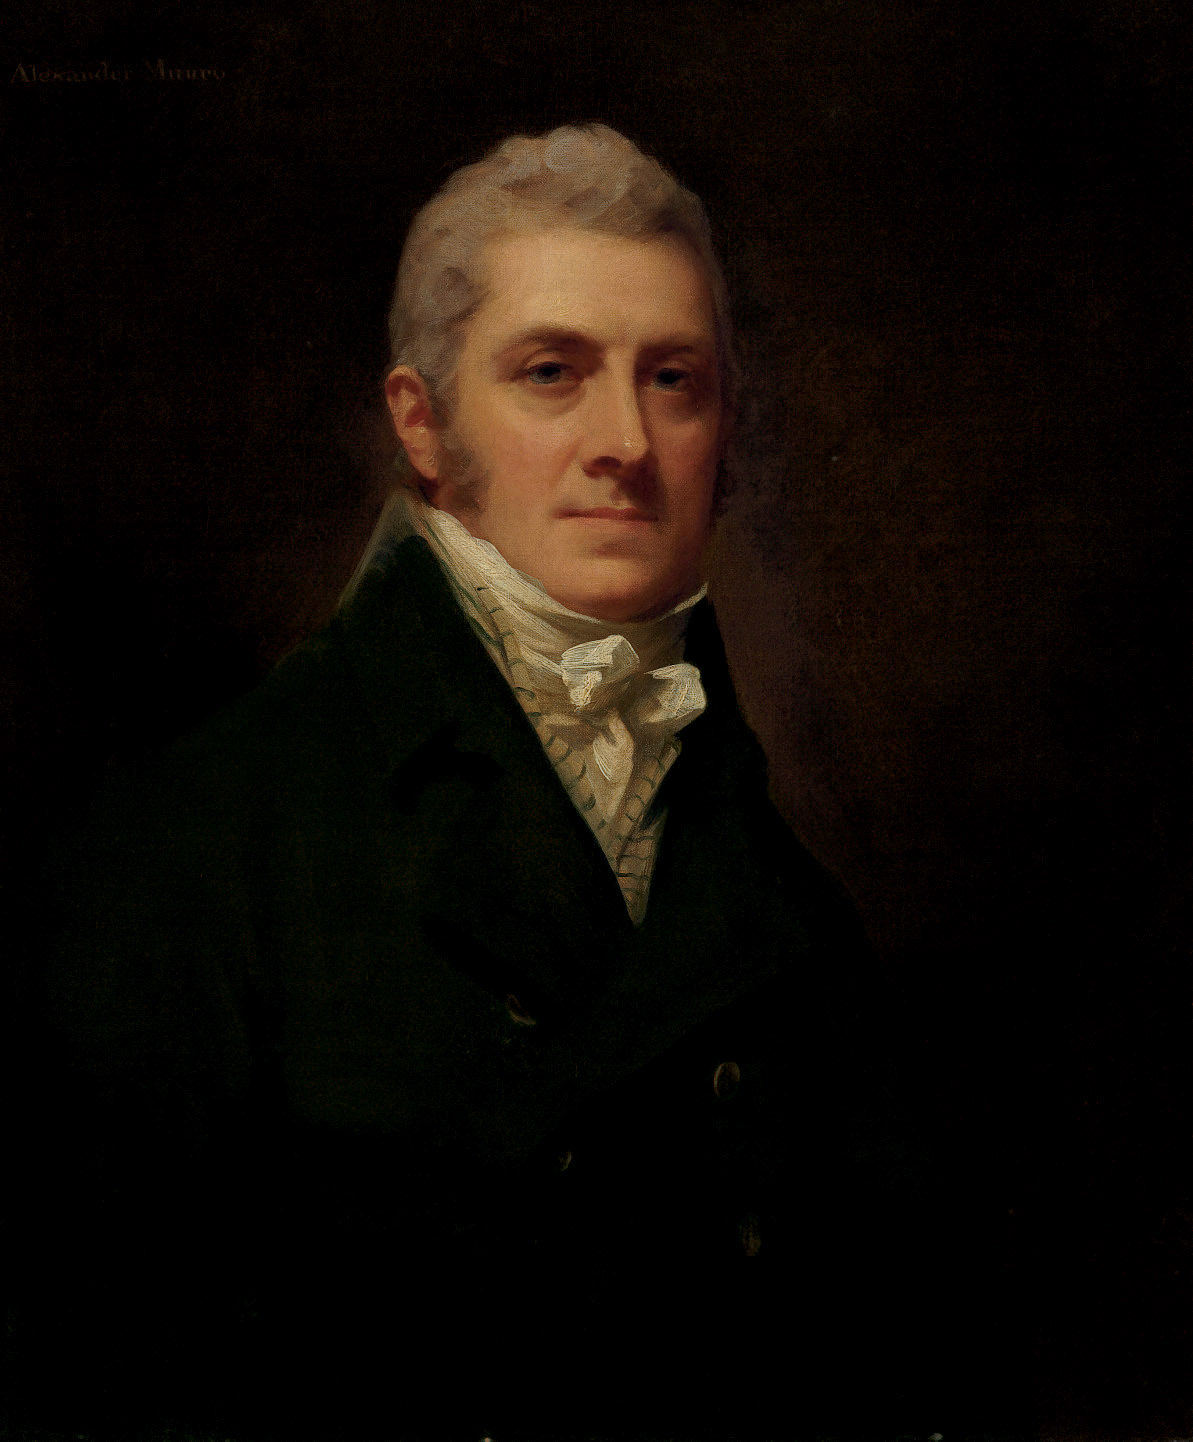 Portrait of Sir Alexander Munro (b.1763/4), half-length